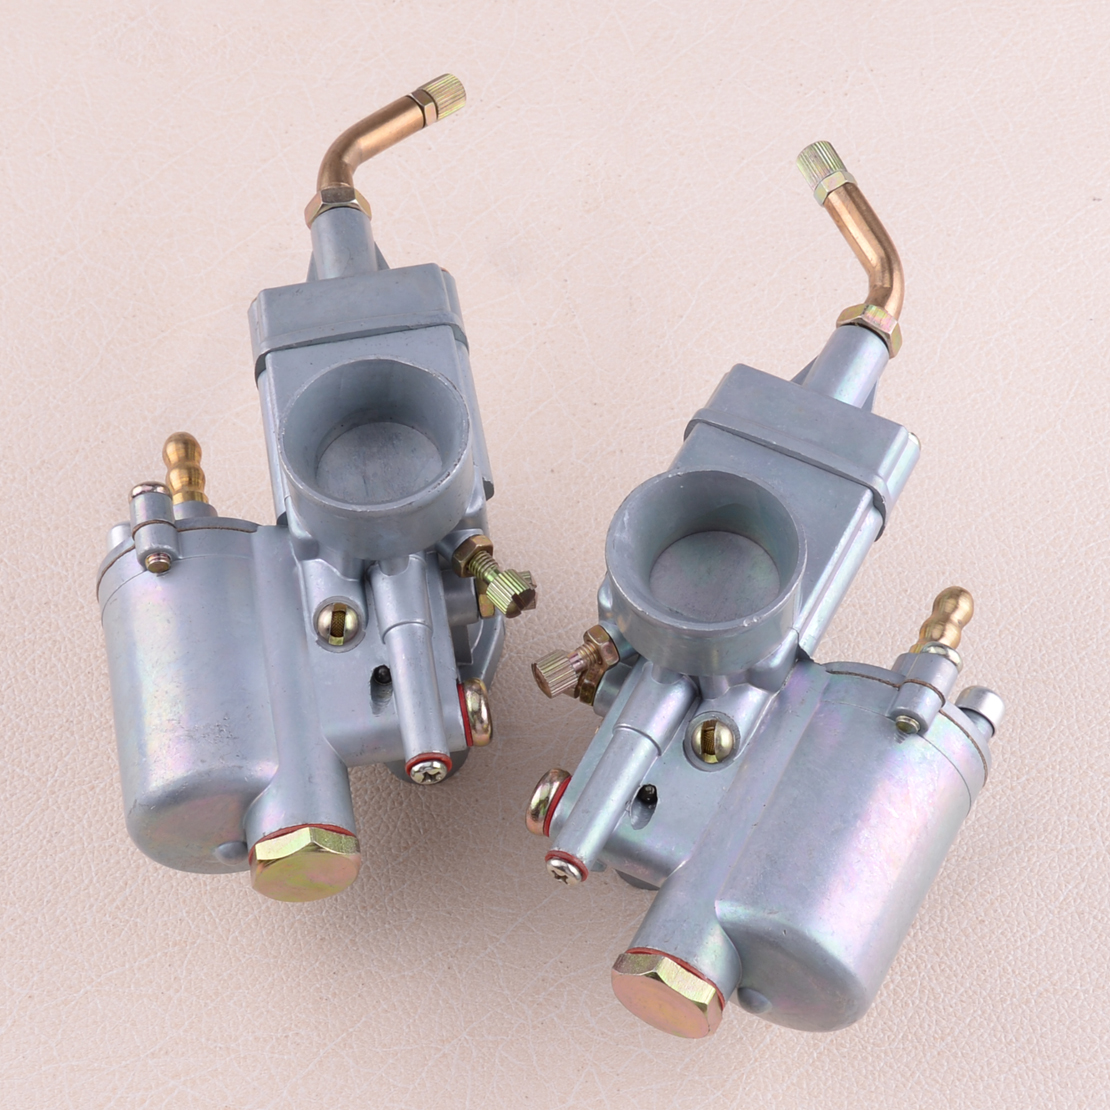 CITALL 1 pair Left & Right 28mm Carb Pair Vergaser Carburettor Carby fit for K302 BMW M72 MT URAL K750 MW Dnepr 1 pair left